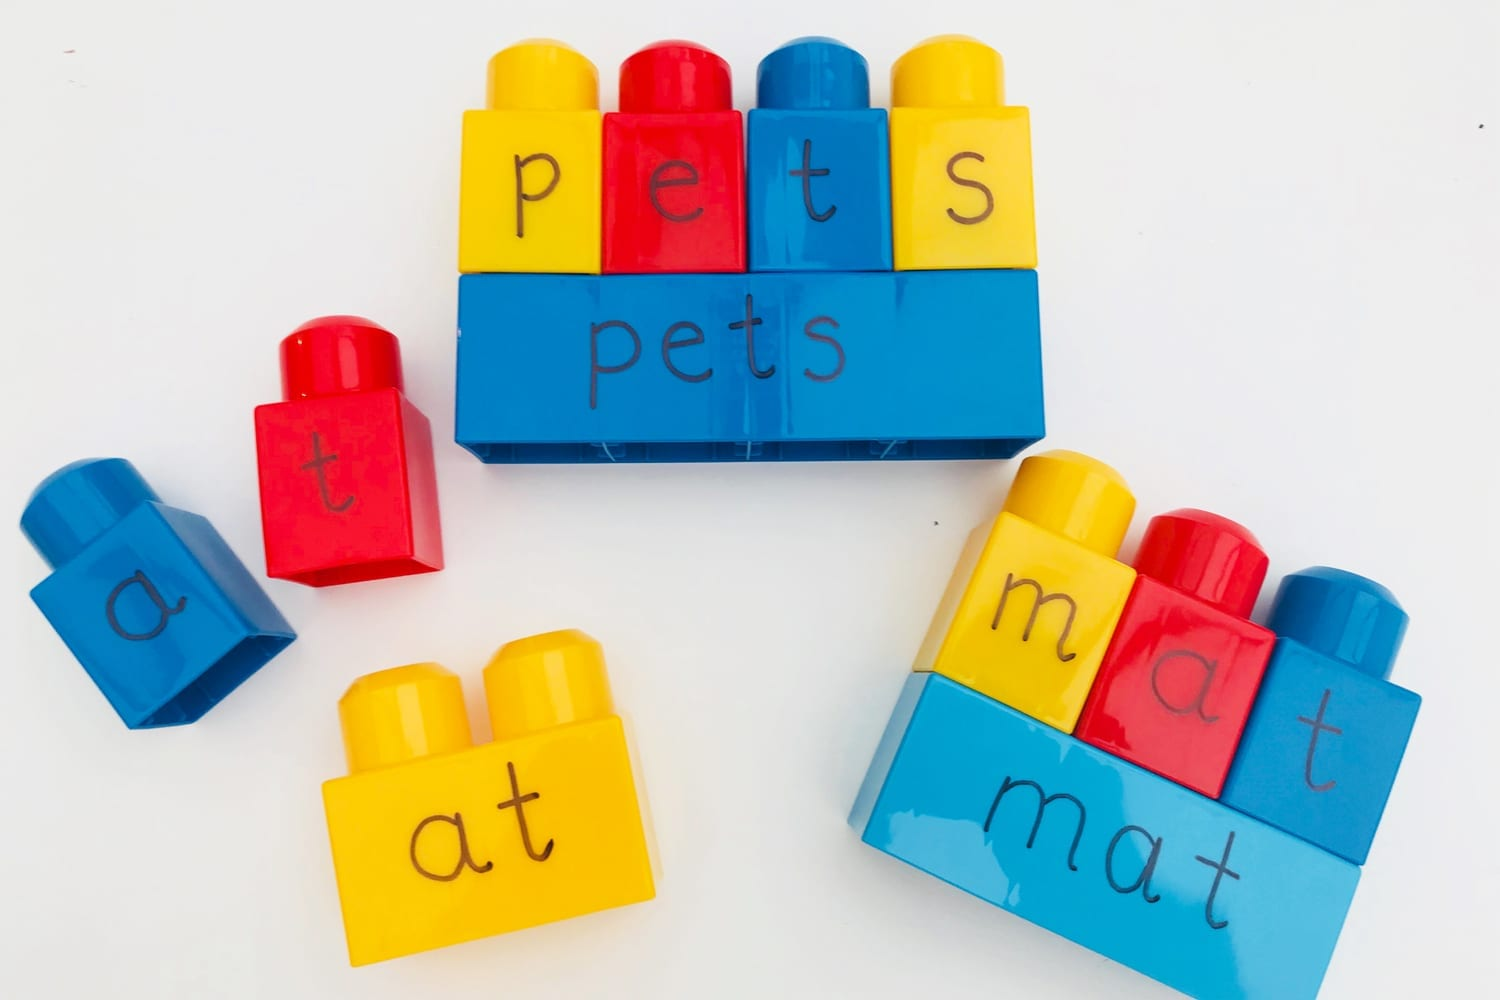 Spelling activities with building blocks | Learning Fun | Mas & Pas